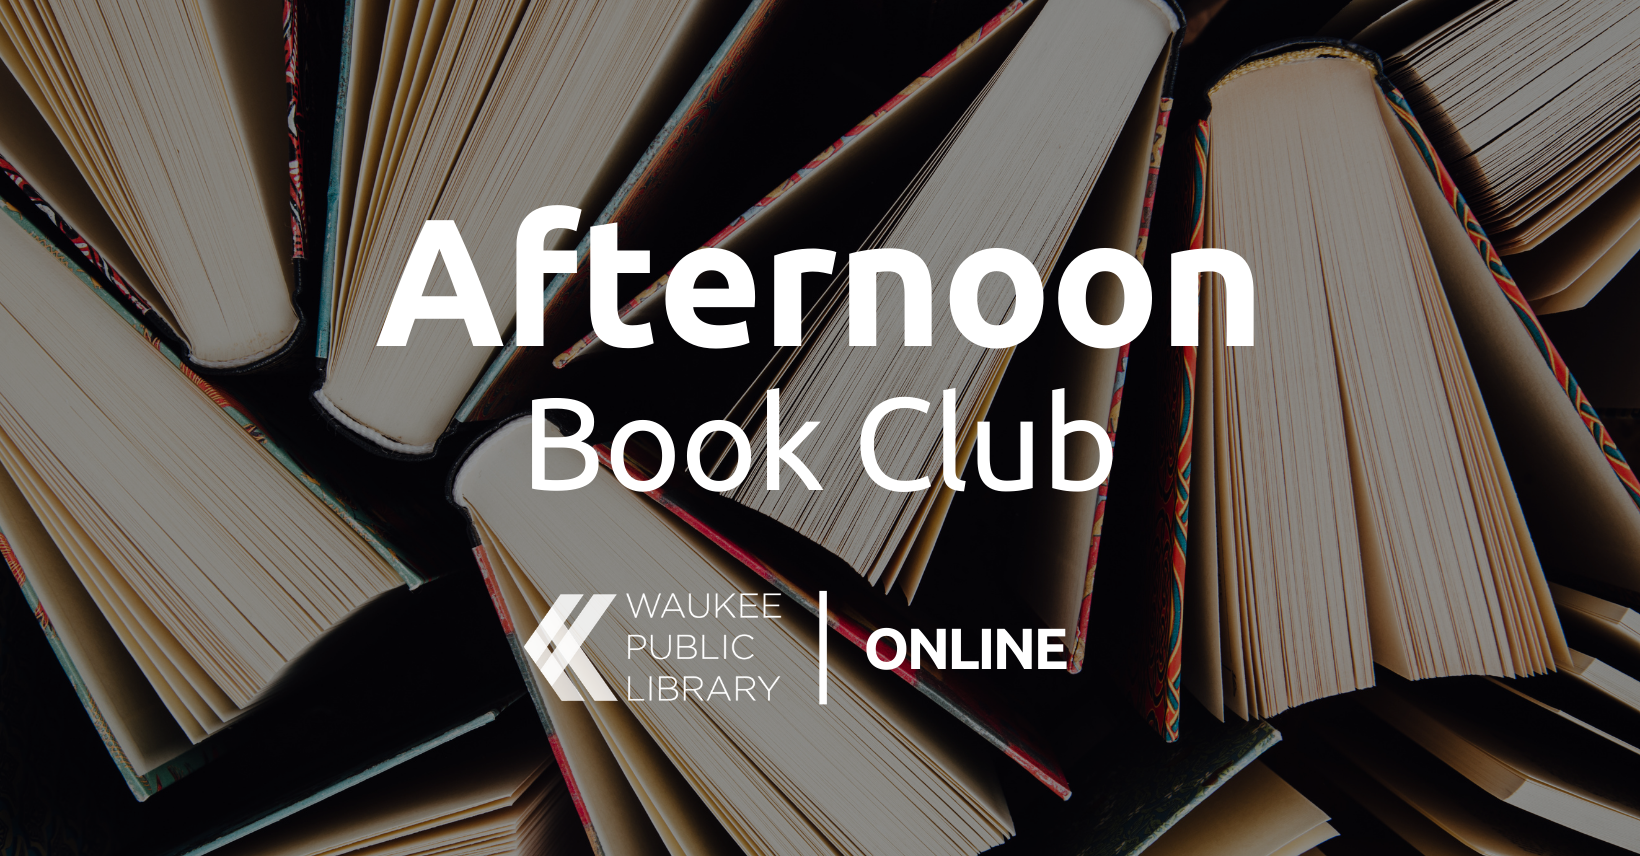 Afternoon Book Club: One Thousand White Women